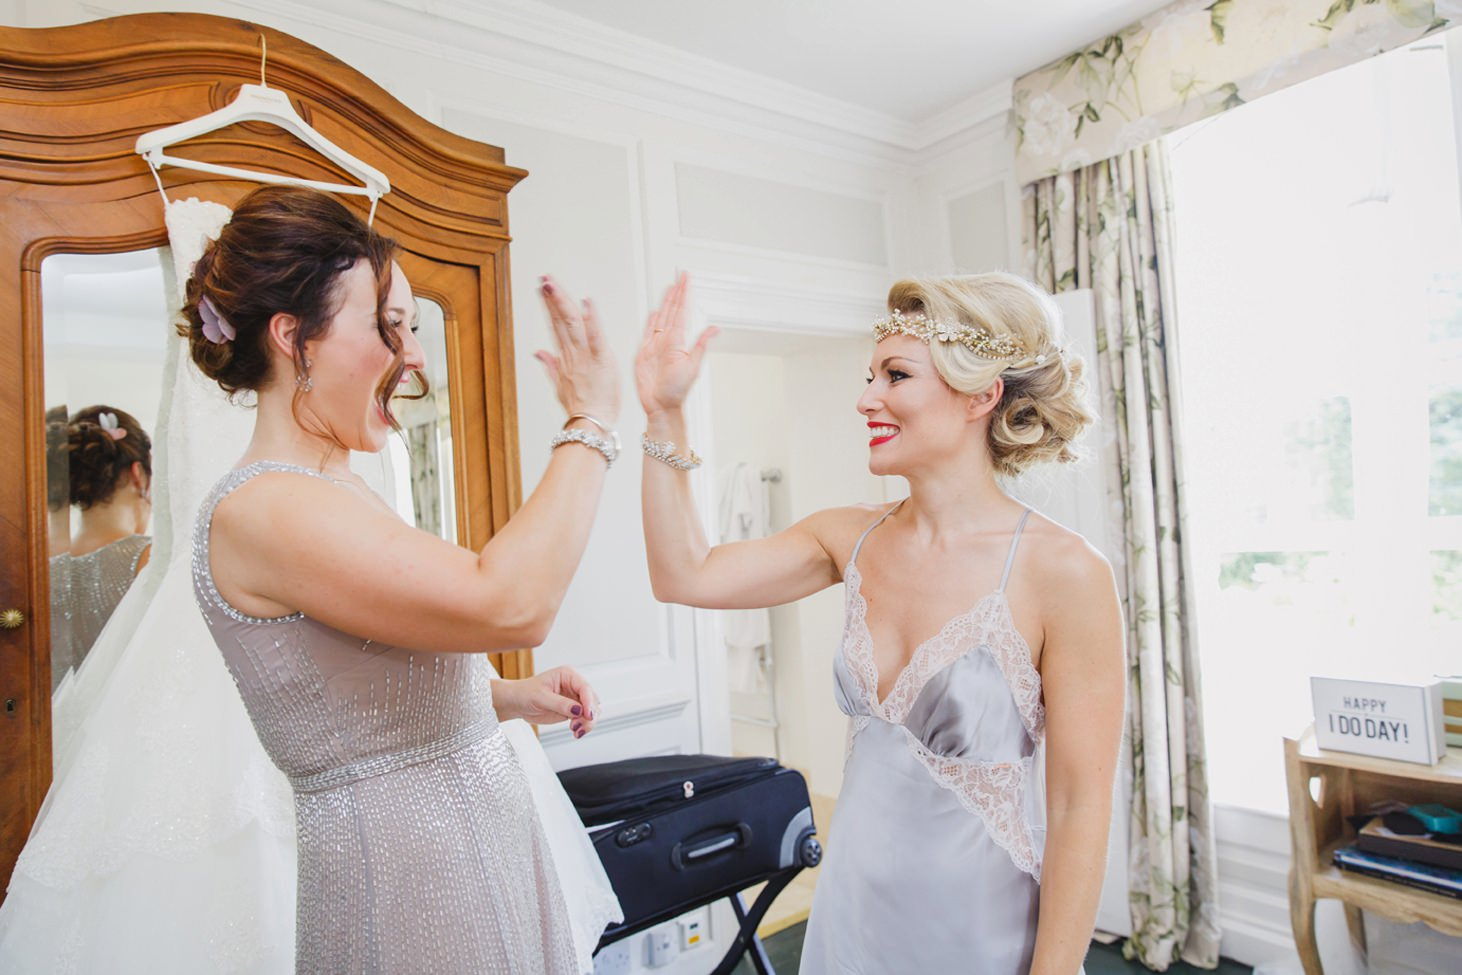 The Rectory Hotel Crudwell bride with bridesmaid